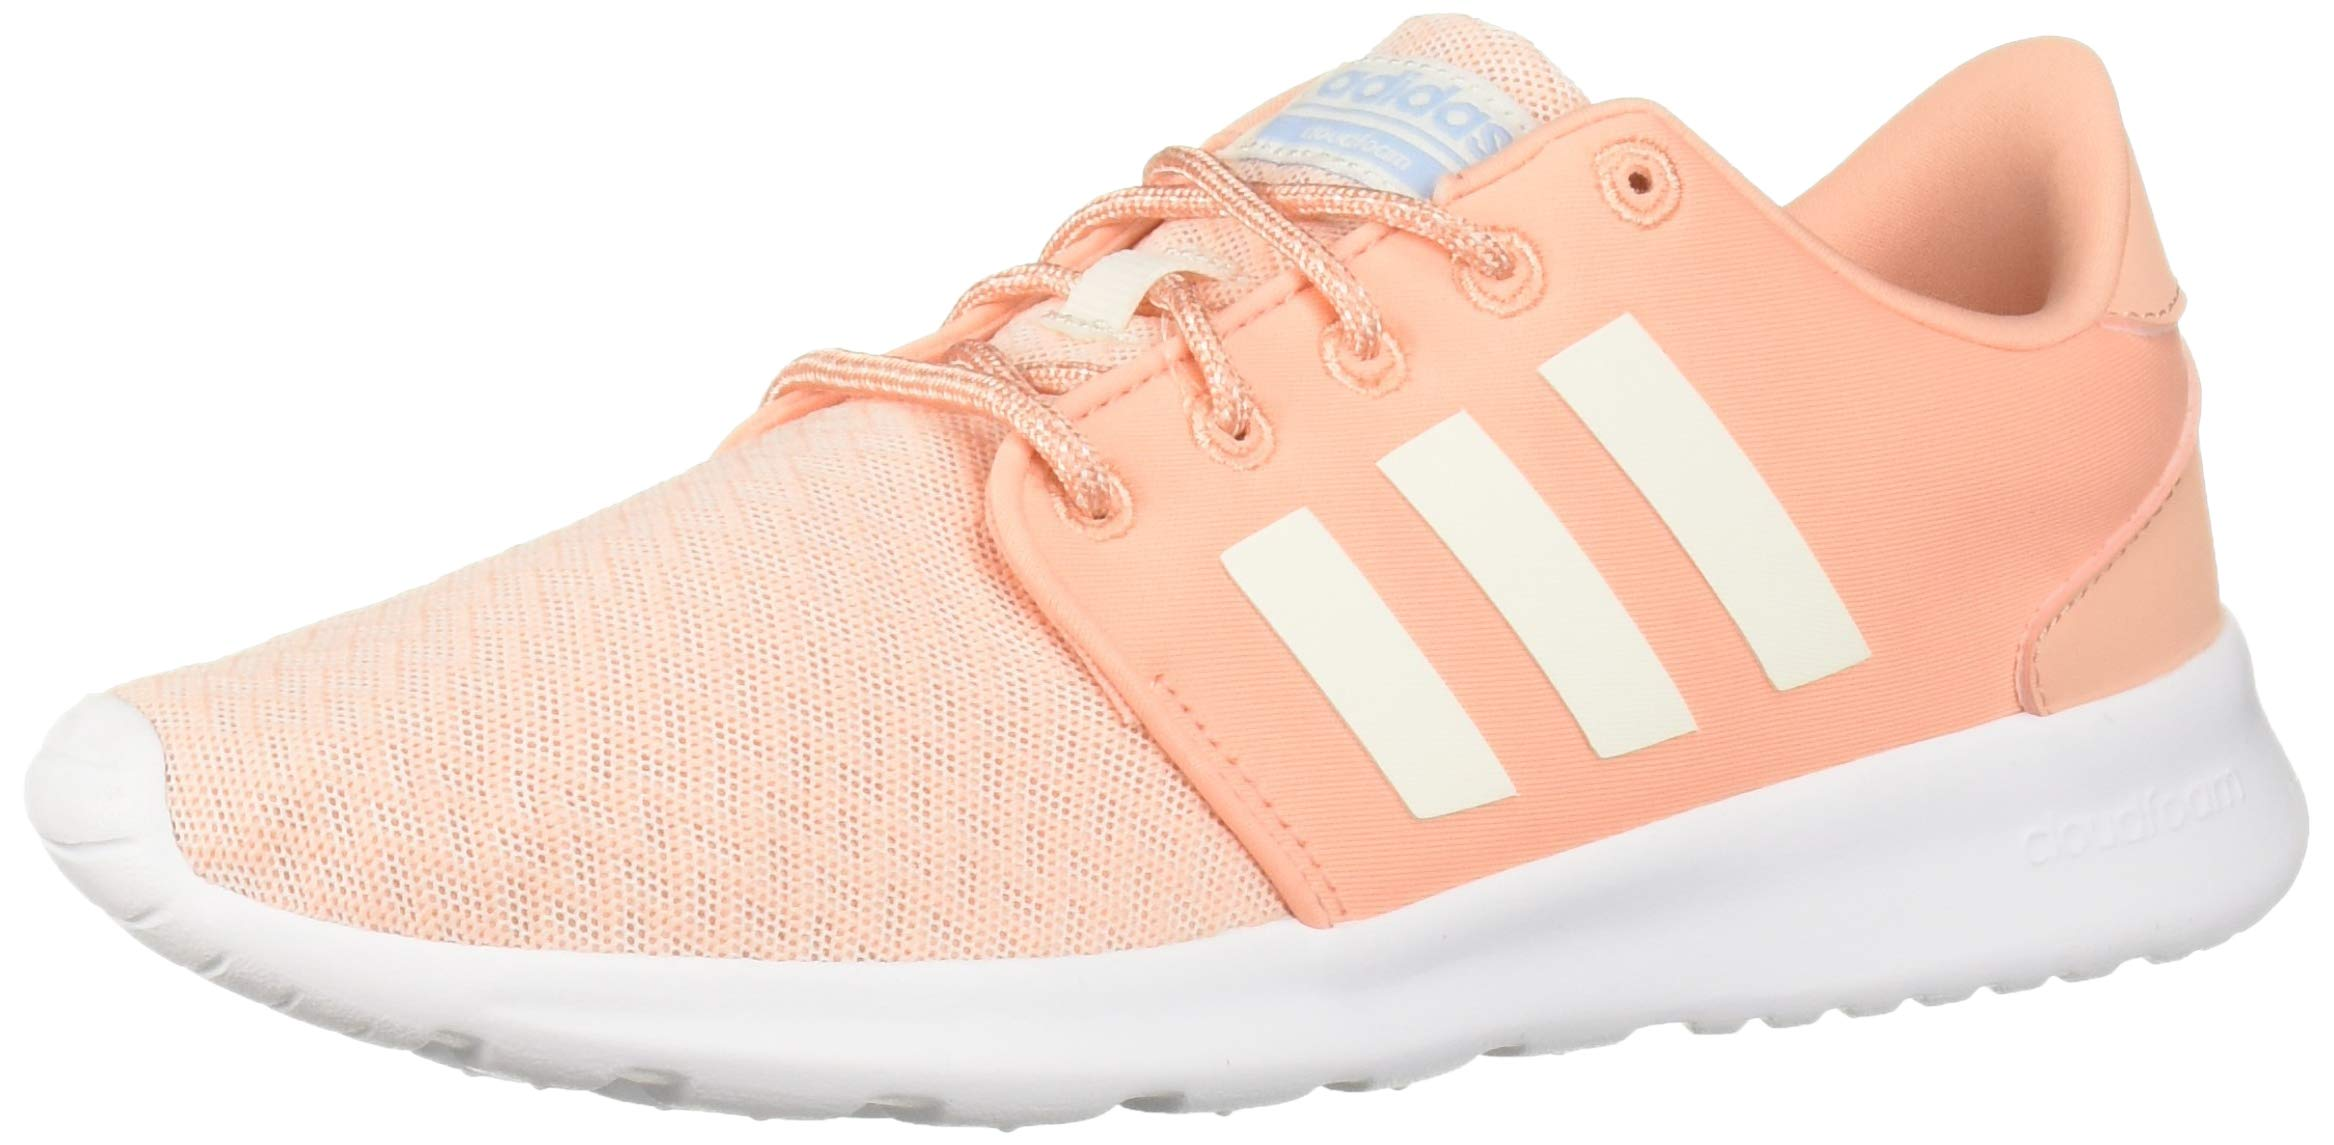 adidas Women's Cloudfoam QT Racer Running Shoe, Pink/Cloud White/Glow Blue, 5.5 M US by adidas